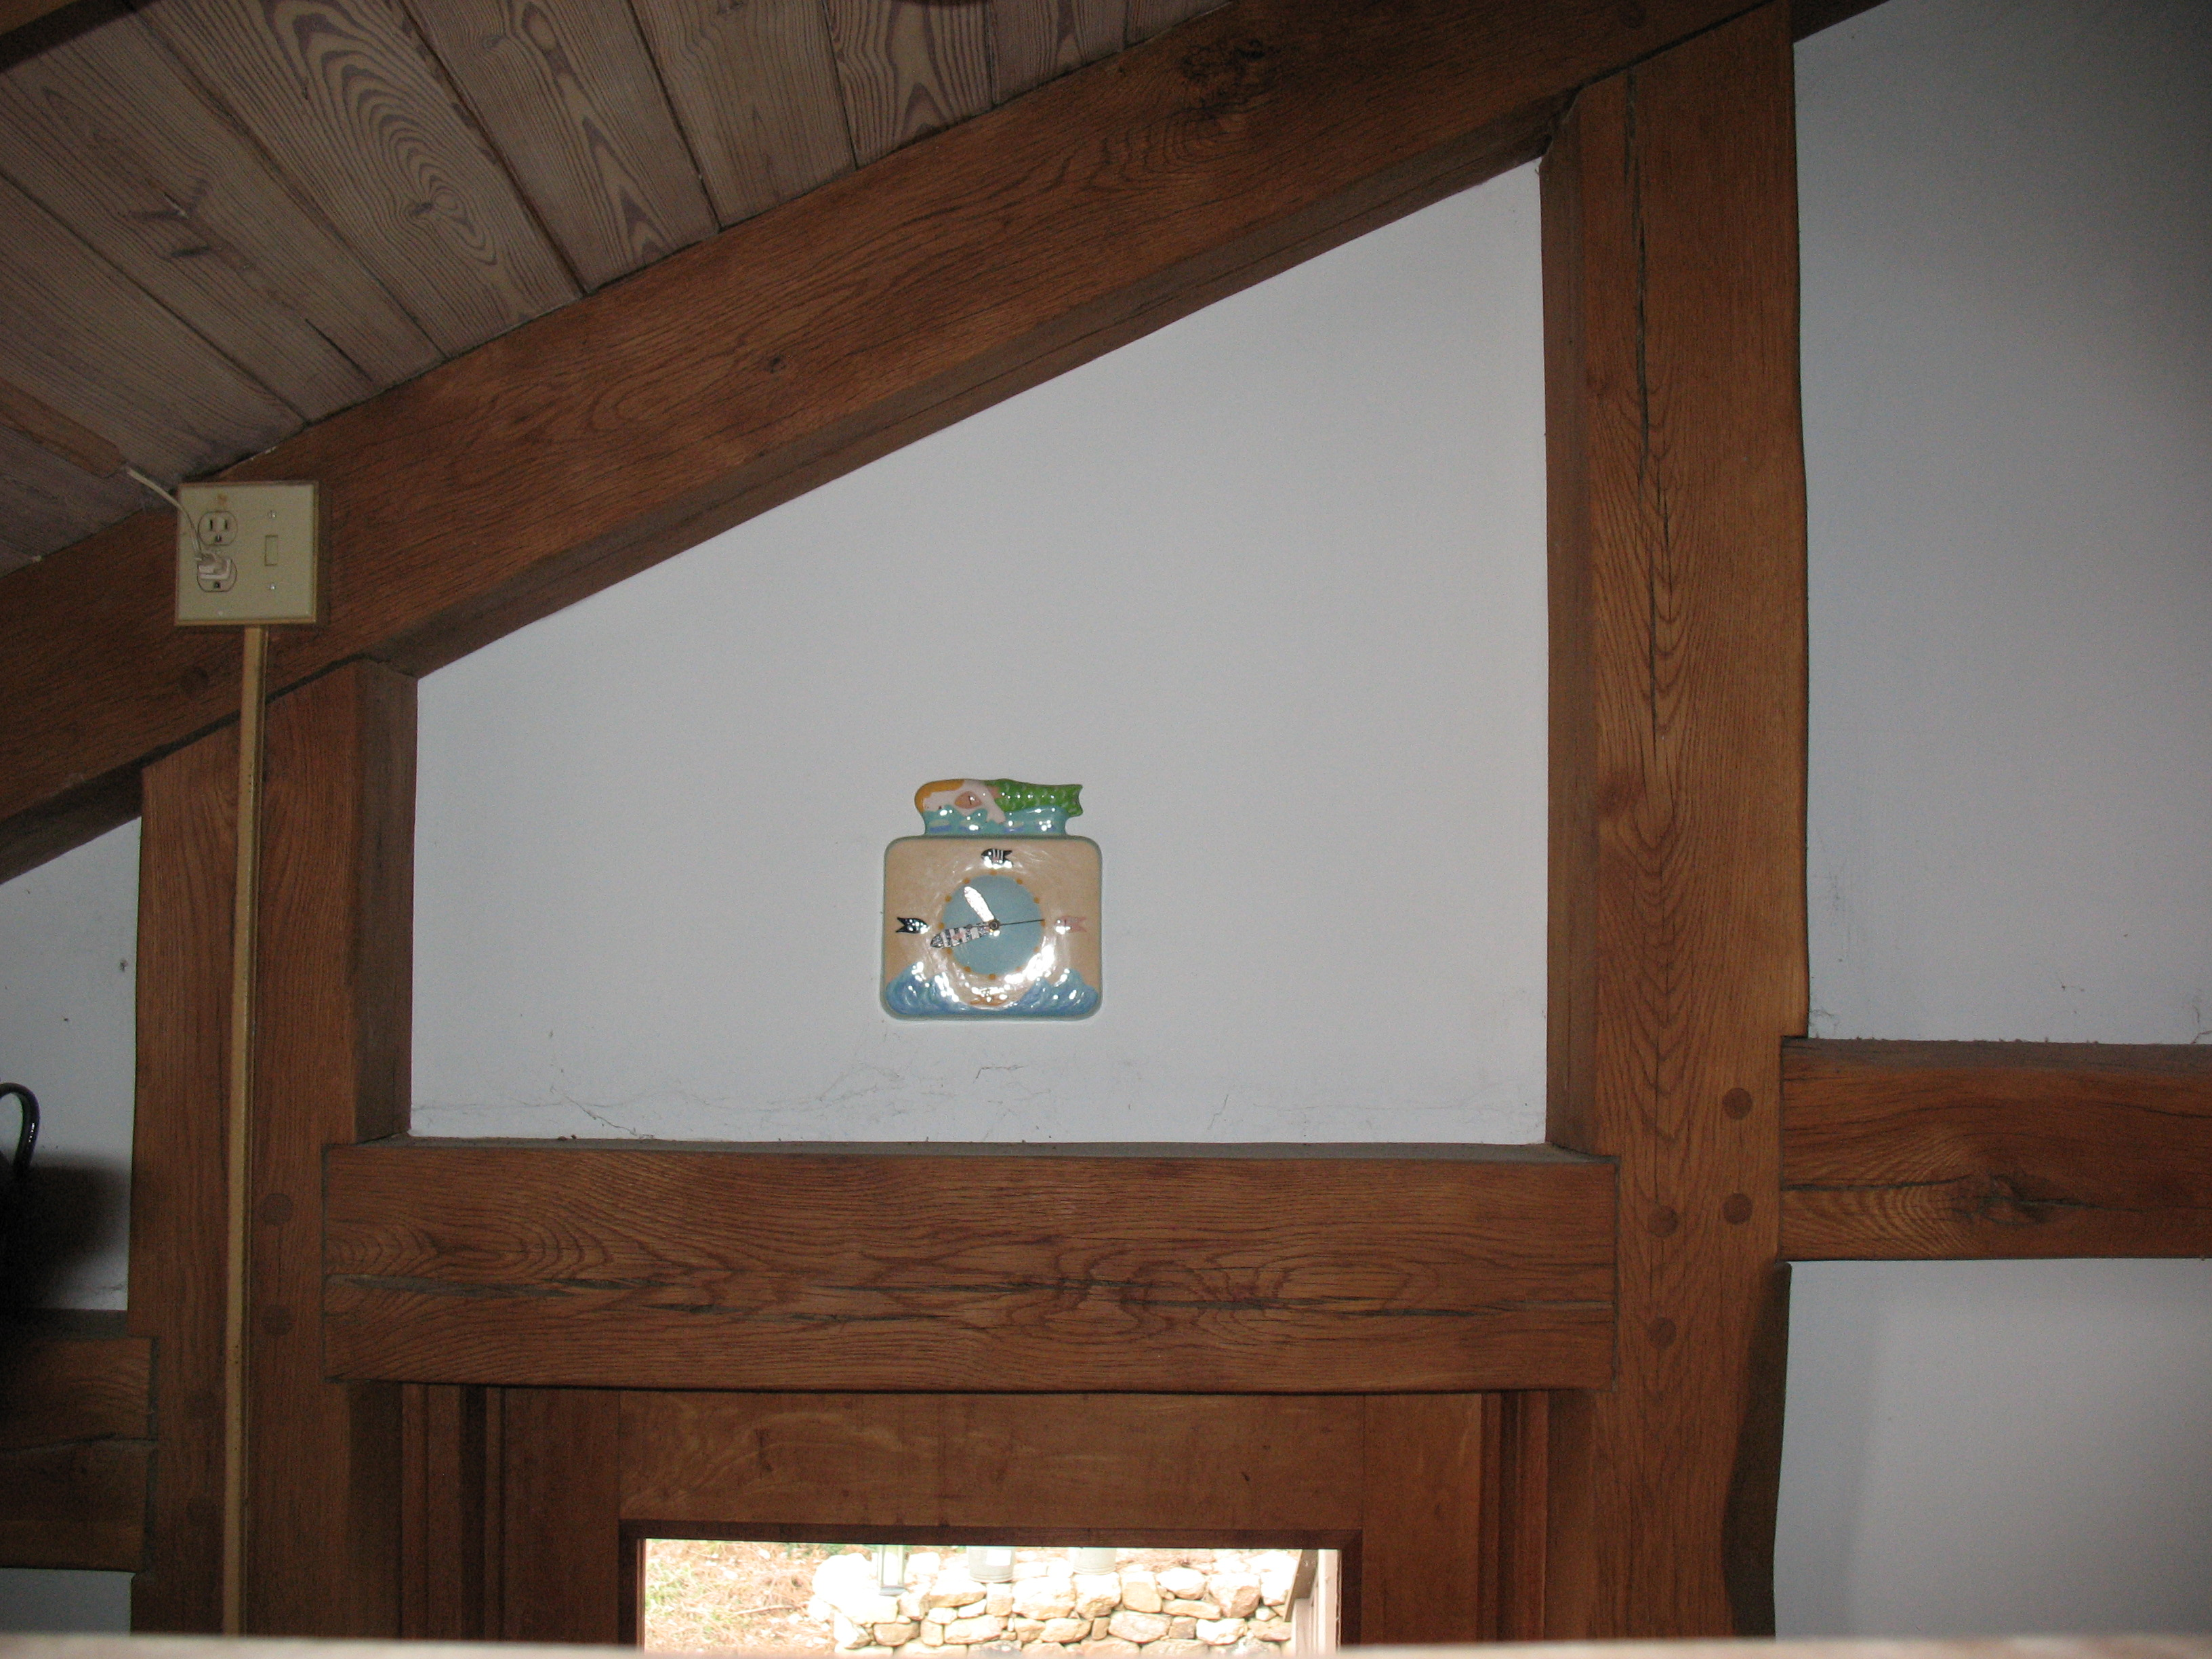 Wonderful Four Pegged Lintel Synonym Post Housed Mortises Tenons Join Lintel Beams To Two Posts Timber Frame Joinery My Jim Wallace Post Lintel Art Definition houzz 01 Post And Lintel